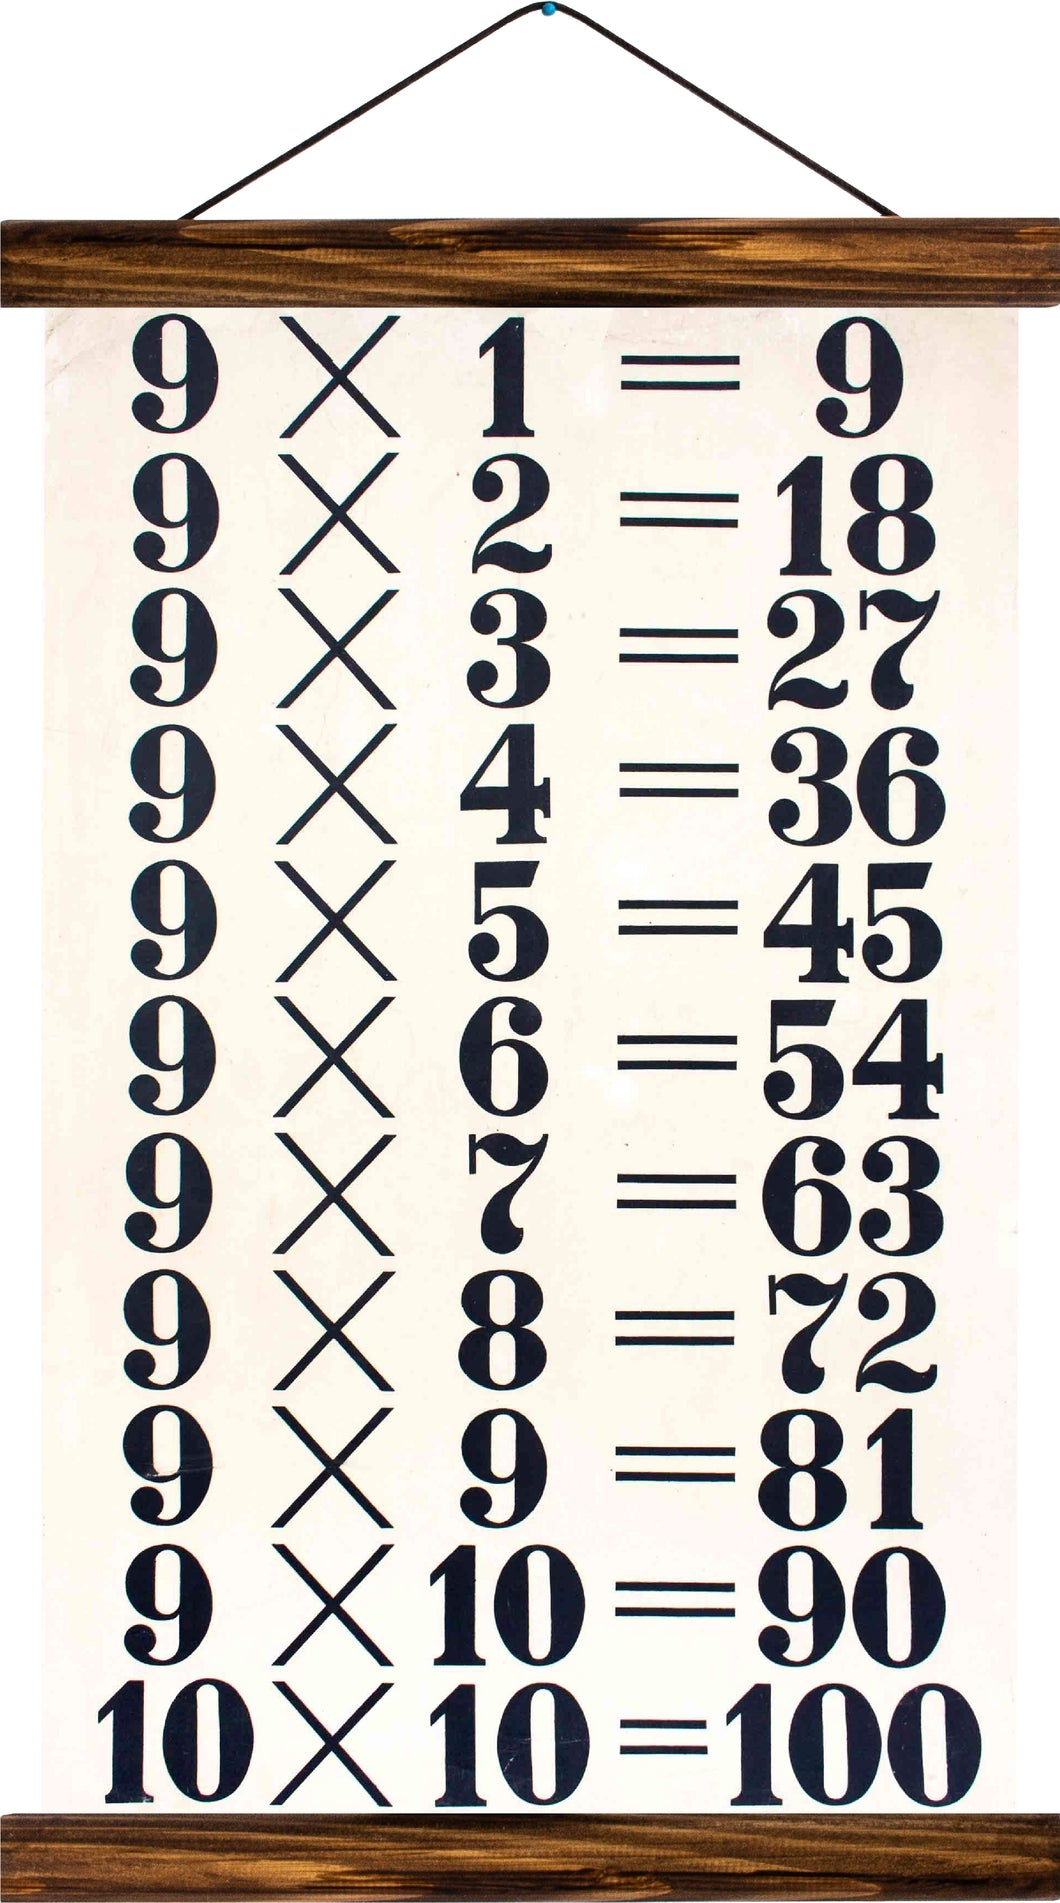 Multiplication calculations, reprint on linen